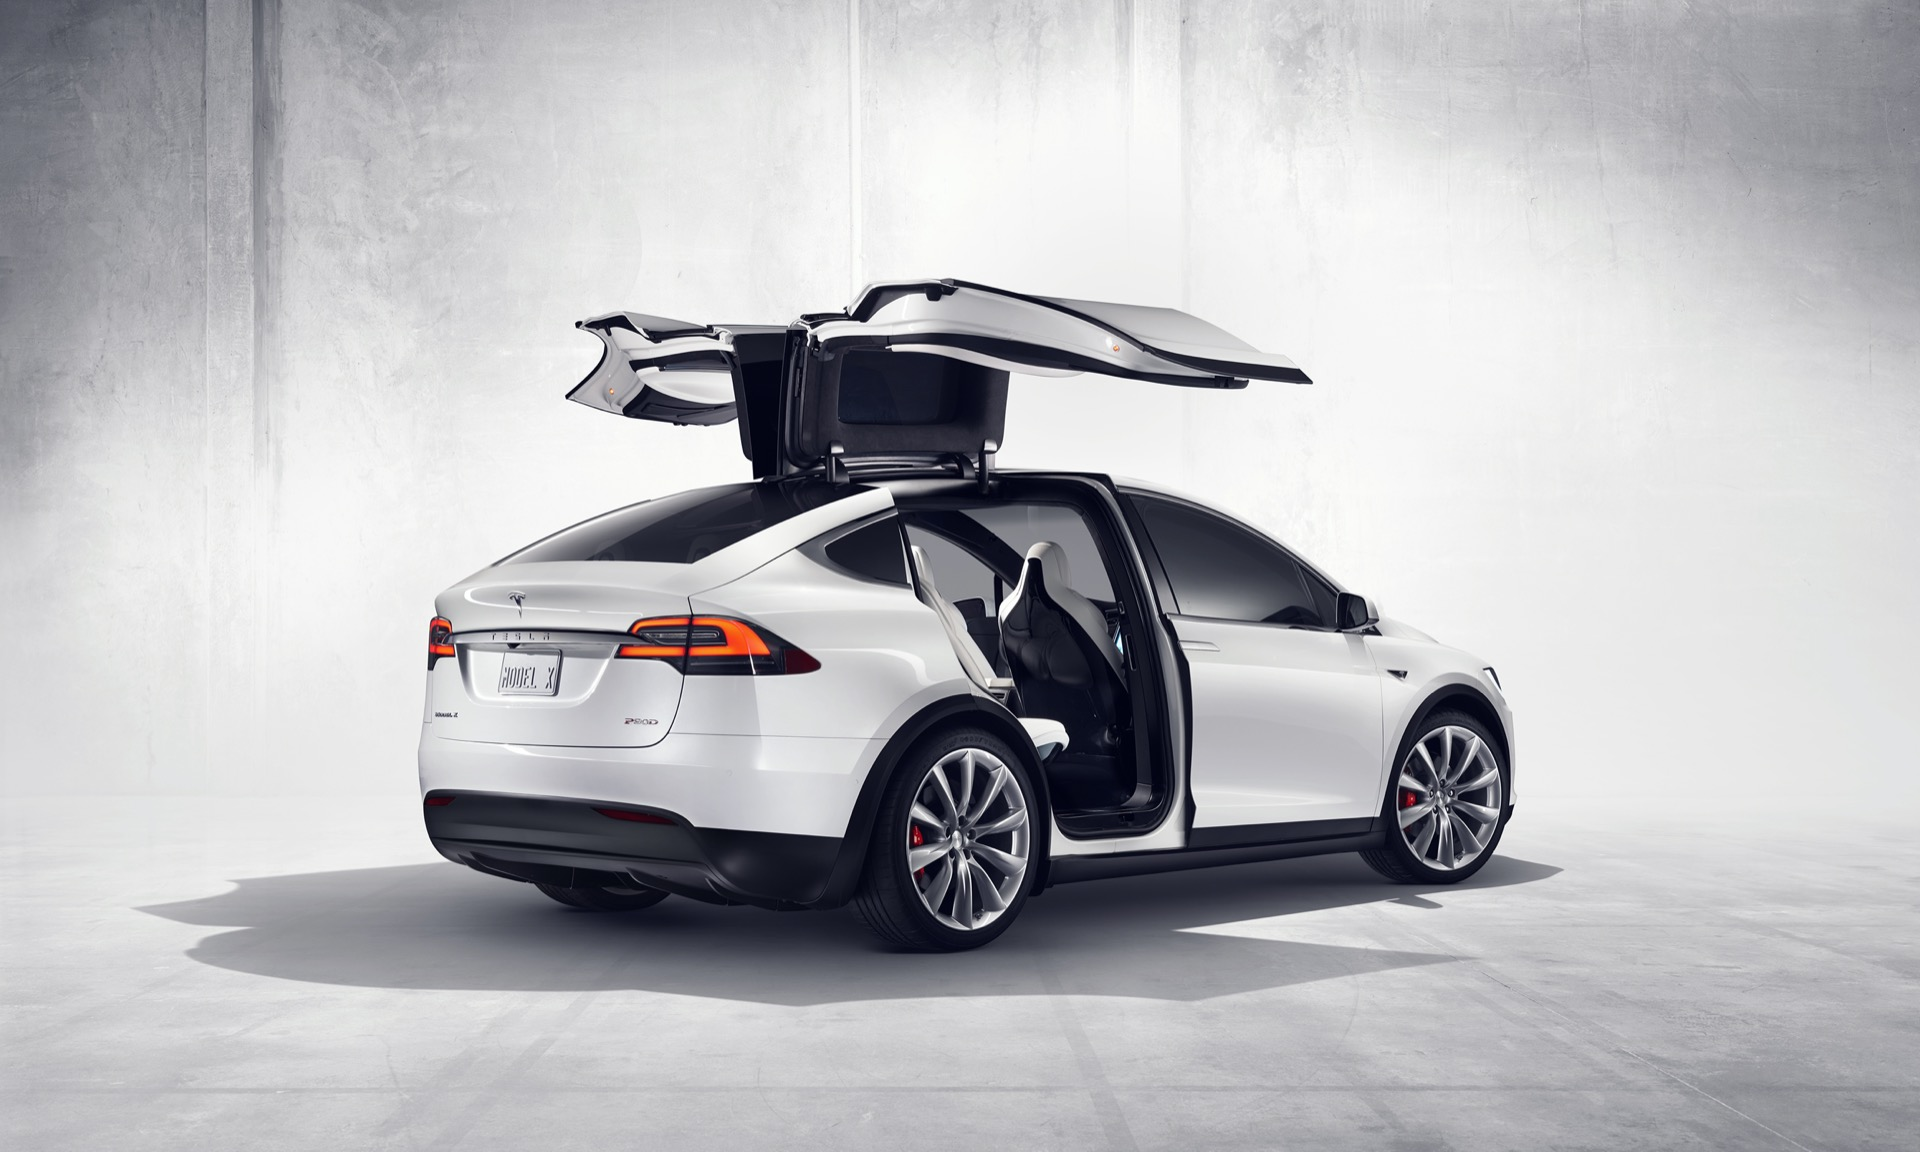 2021 Tesla Model X Review, Ratings, Specs, Prices, and Photos - The Car Connection